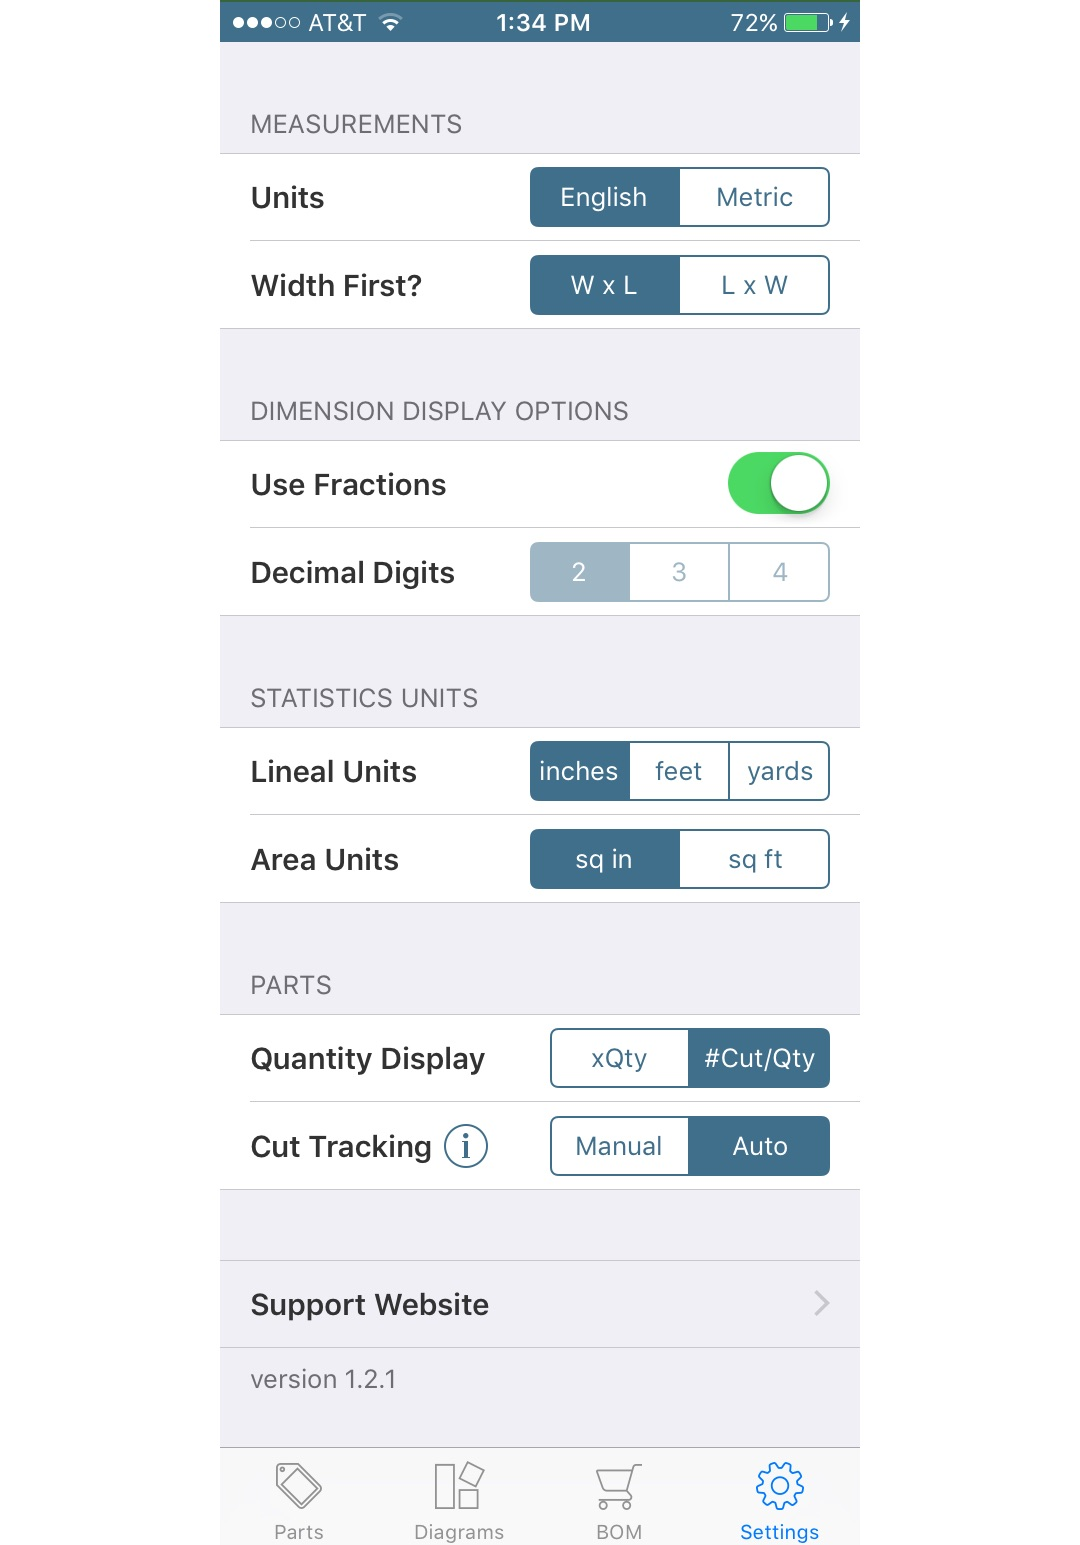 settings screen (iOS)